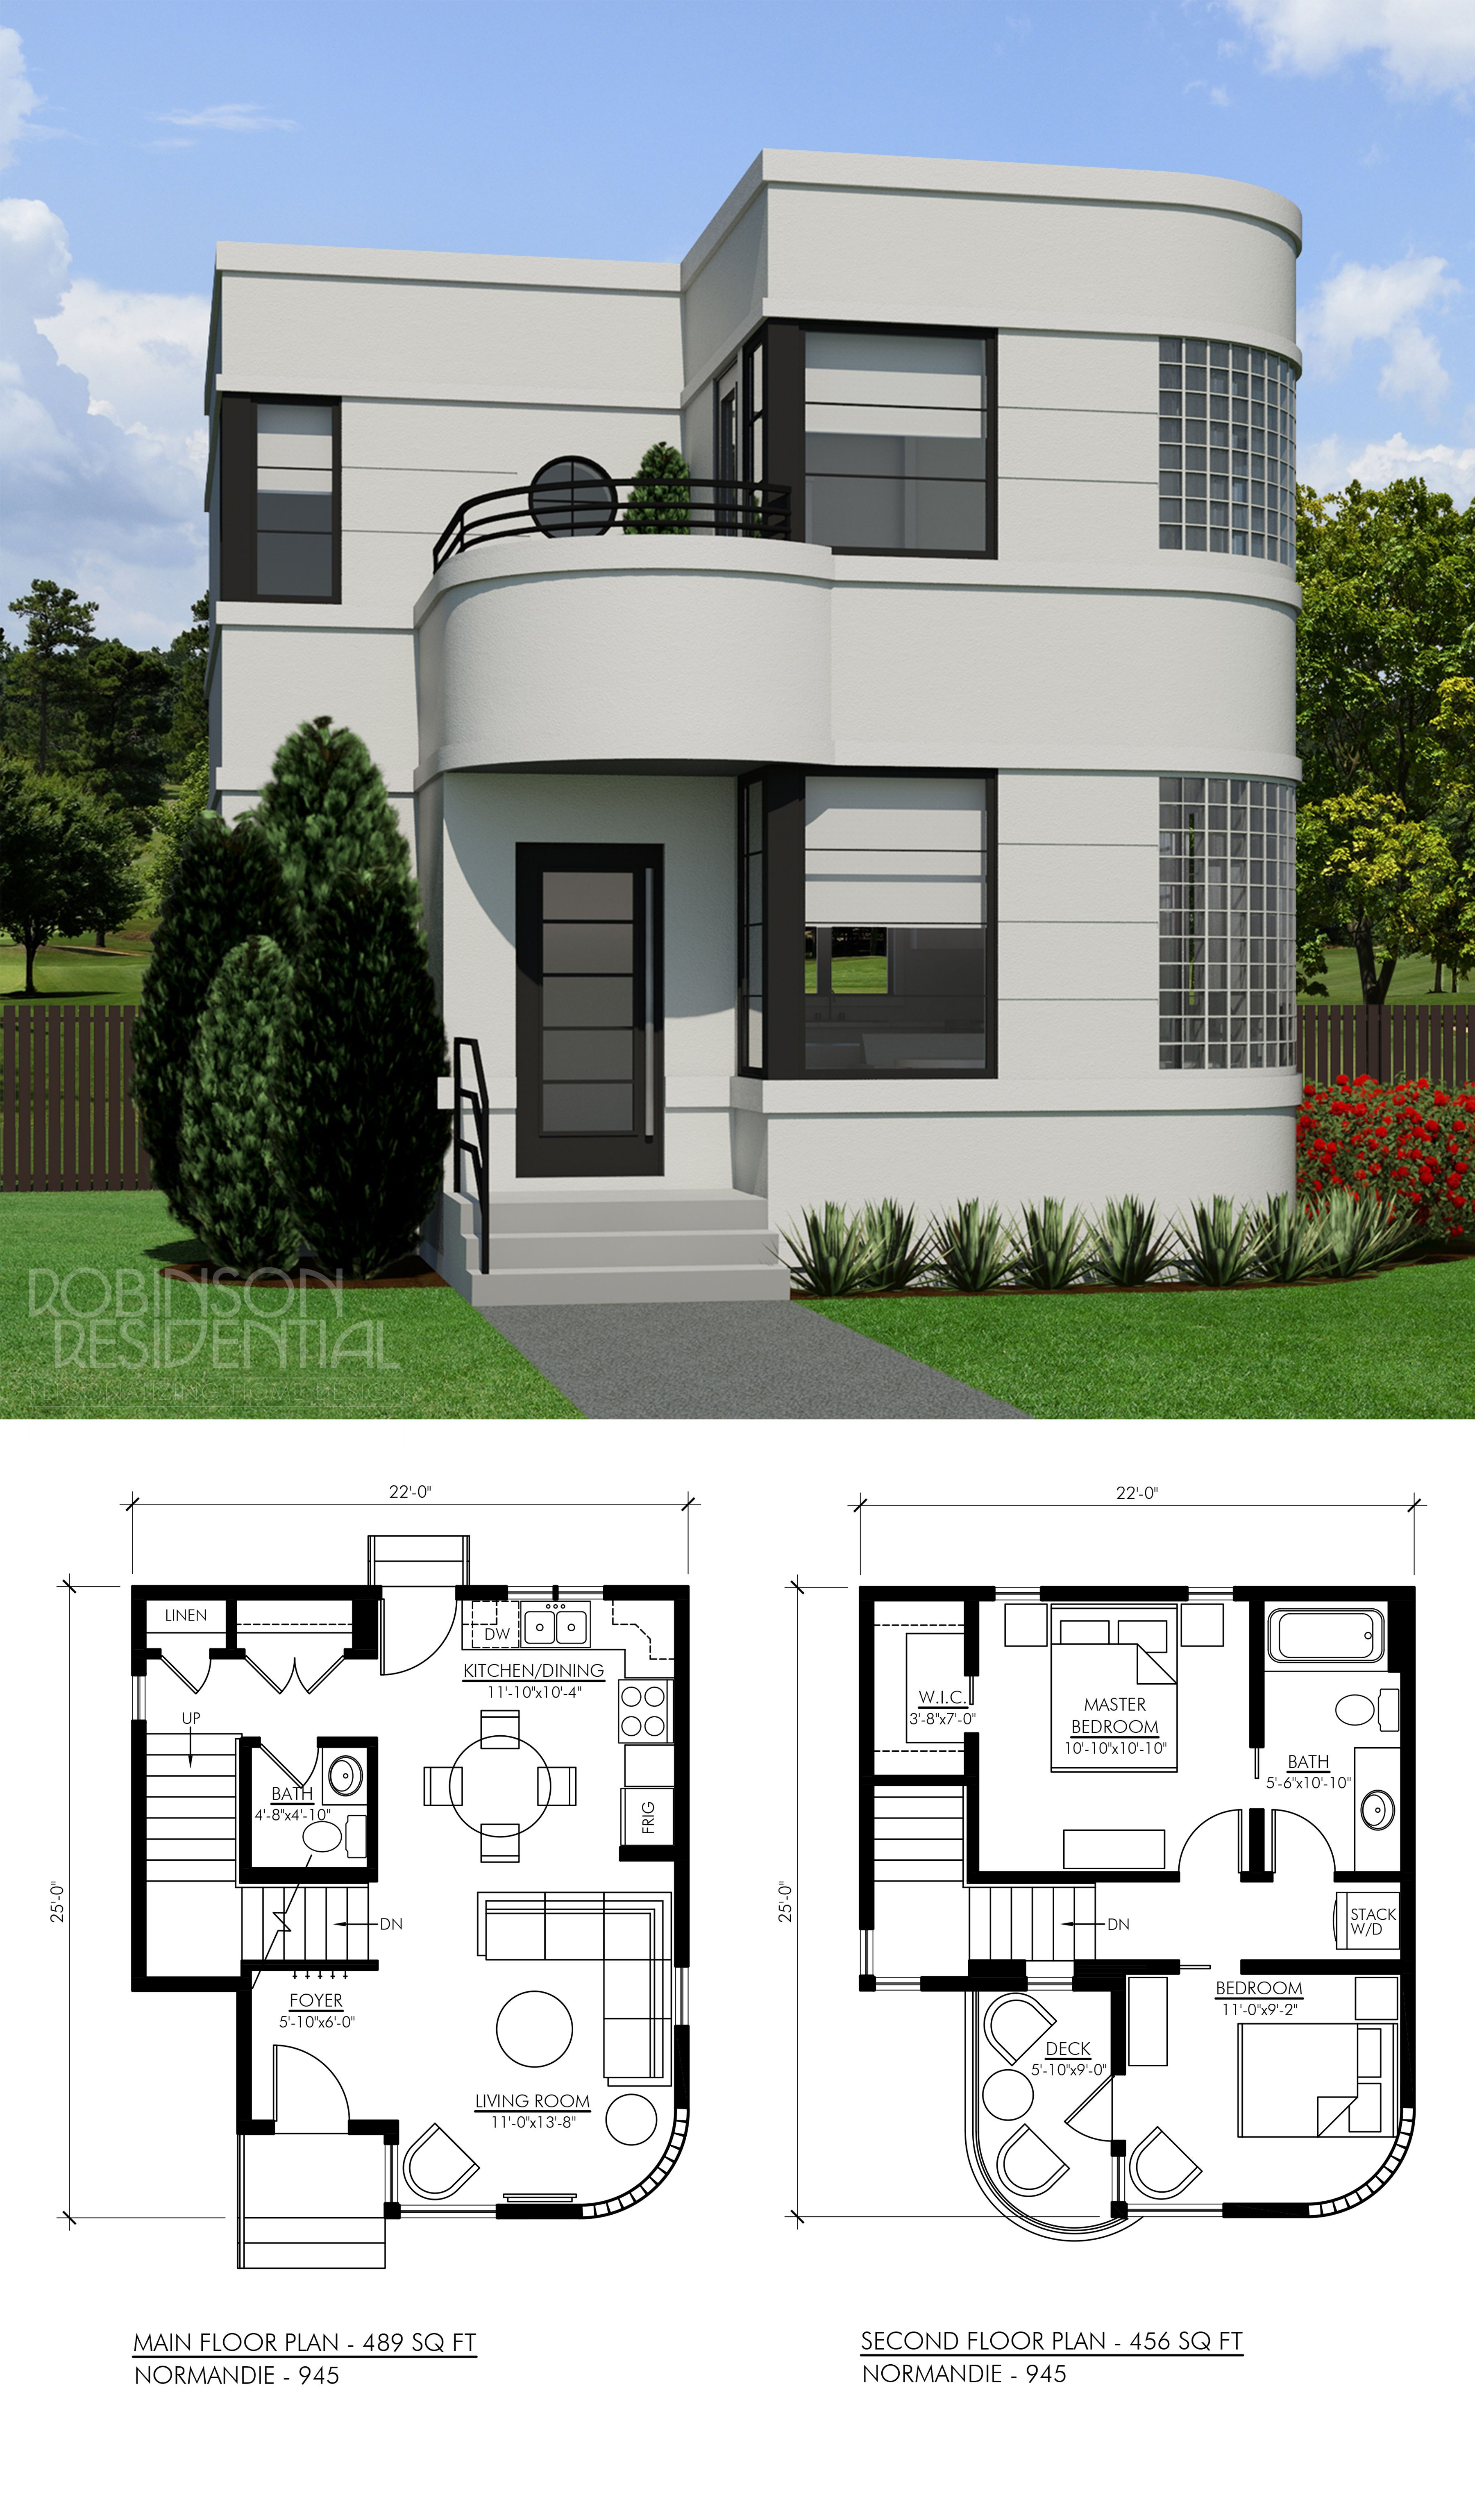 Small House Plans Modern Awesome Contemporary norman 945